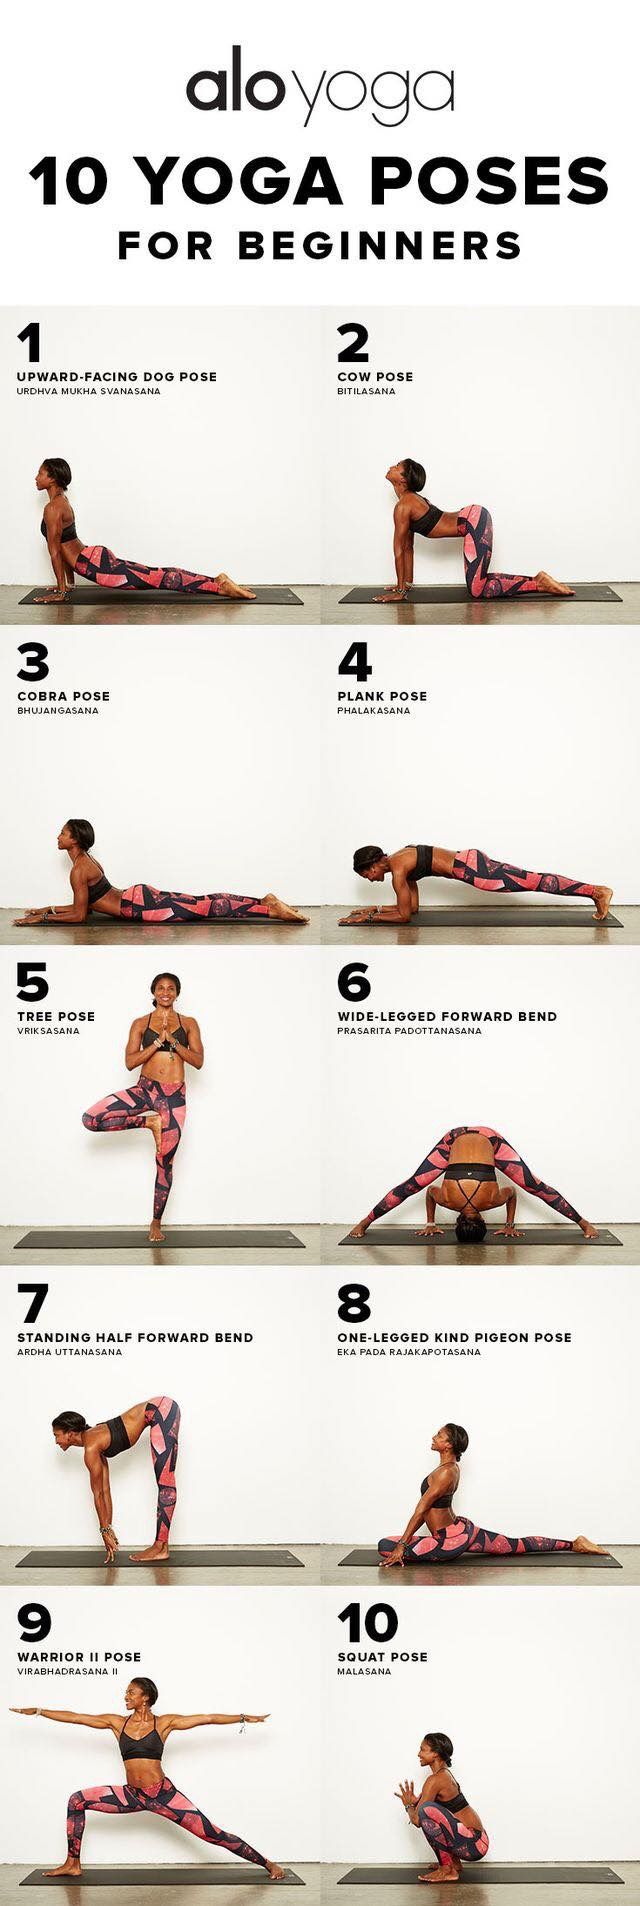 I would like to try this yoga poses